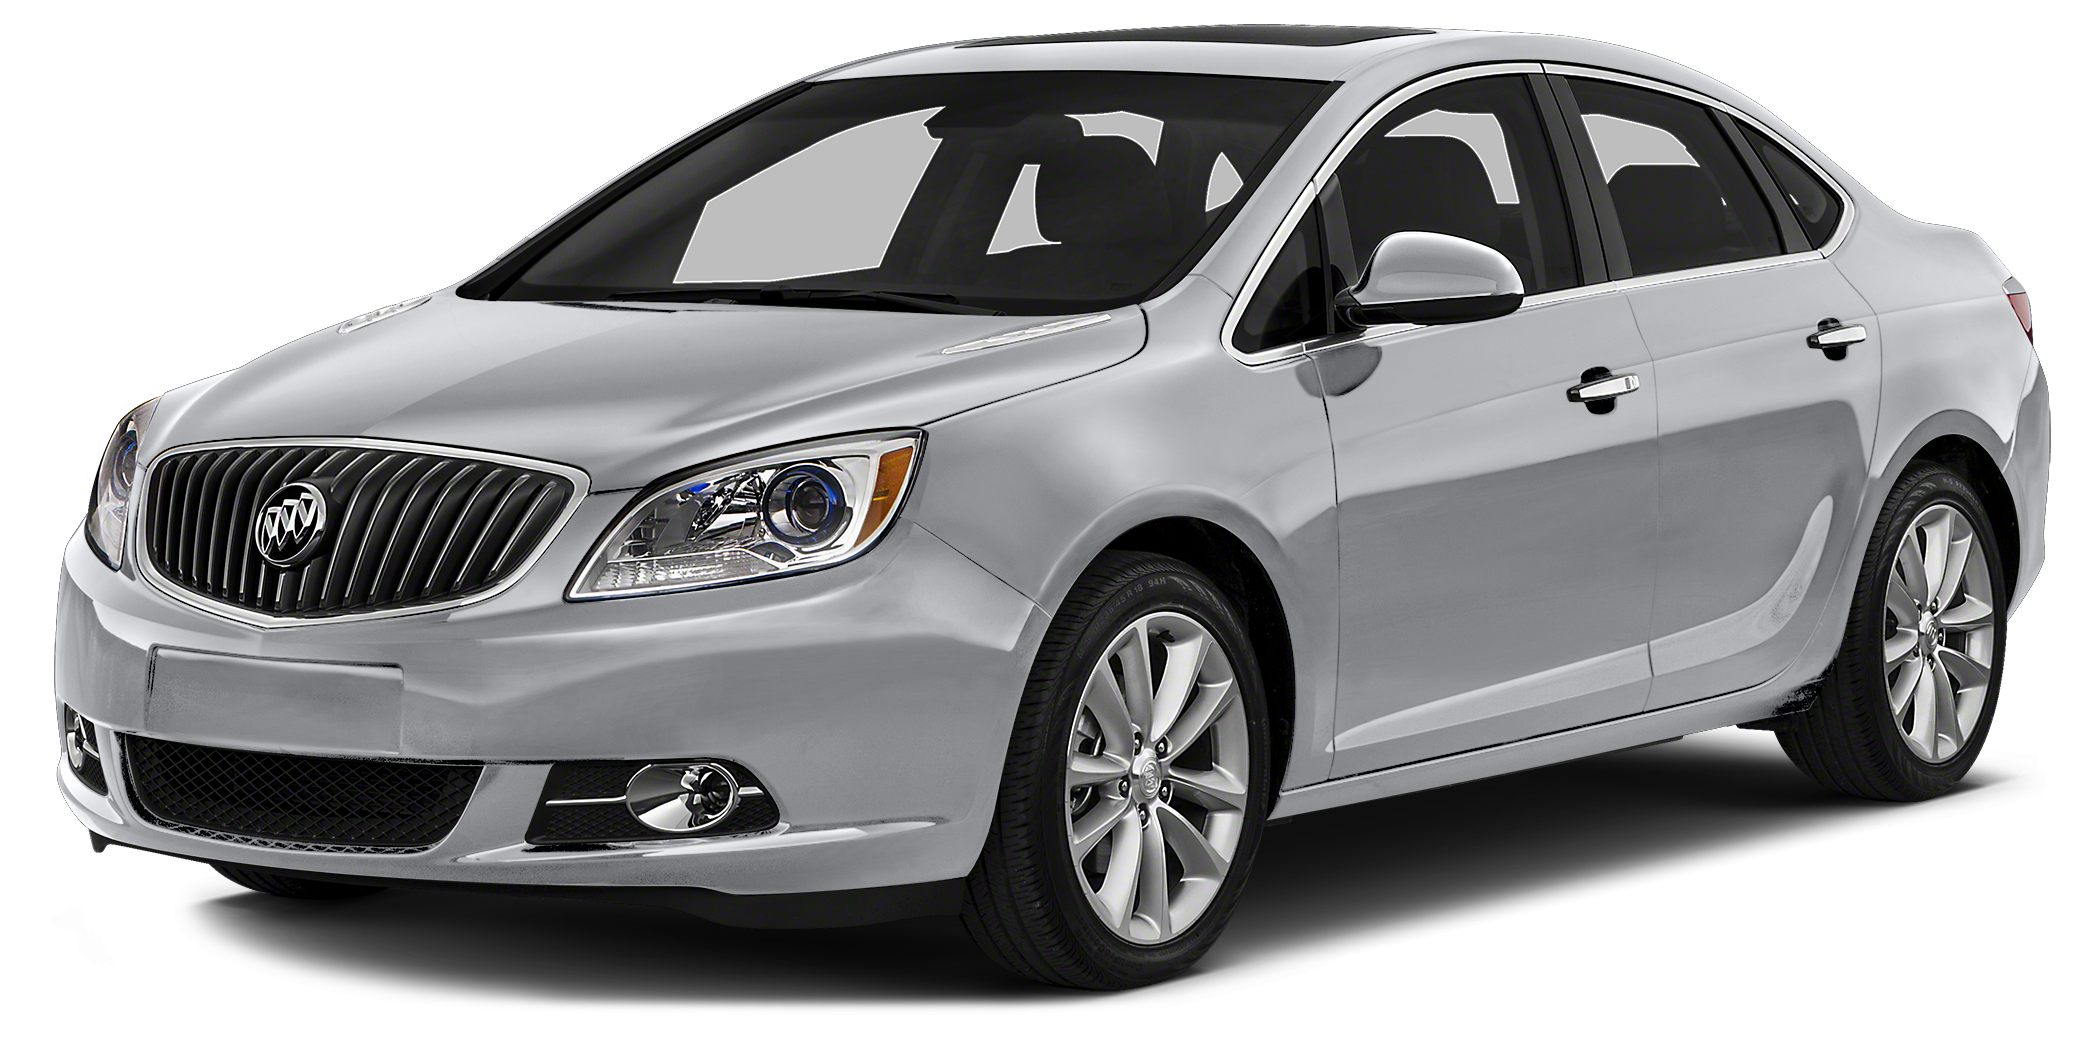 2014 Buick Verano Convenience Group ONLY 27258 Miles EPA 32 MPG Hwy21 MPG City Convenience Gro